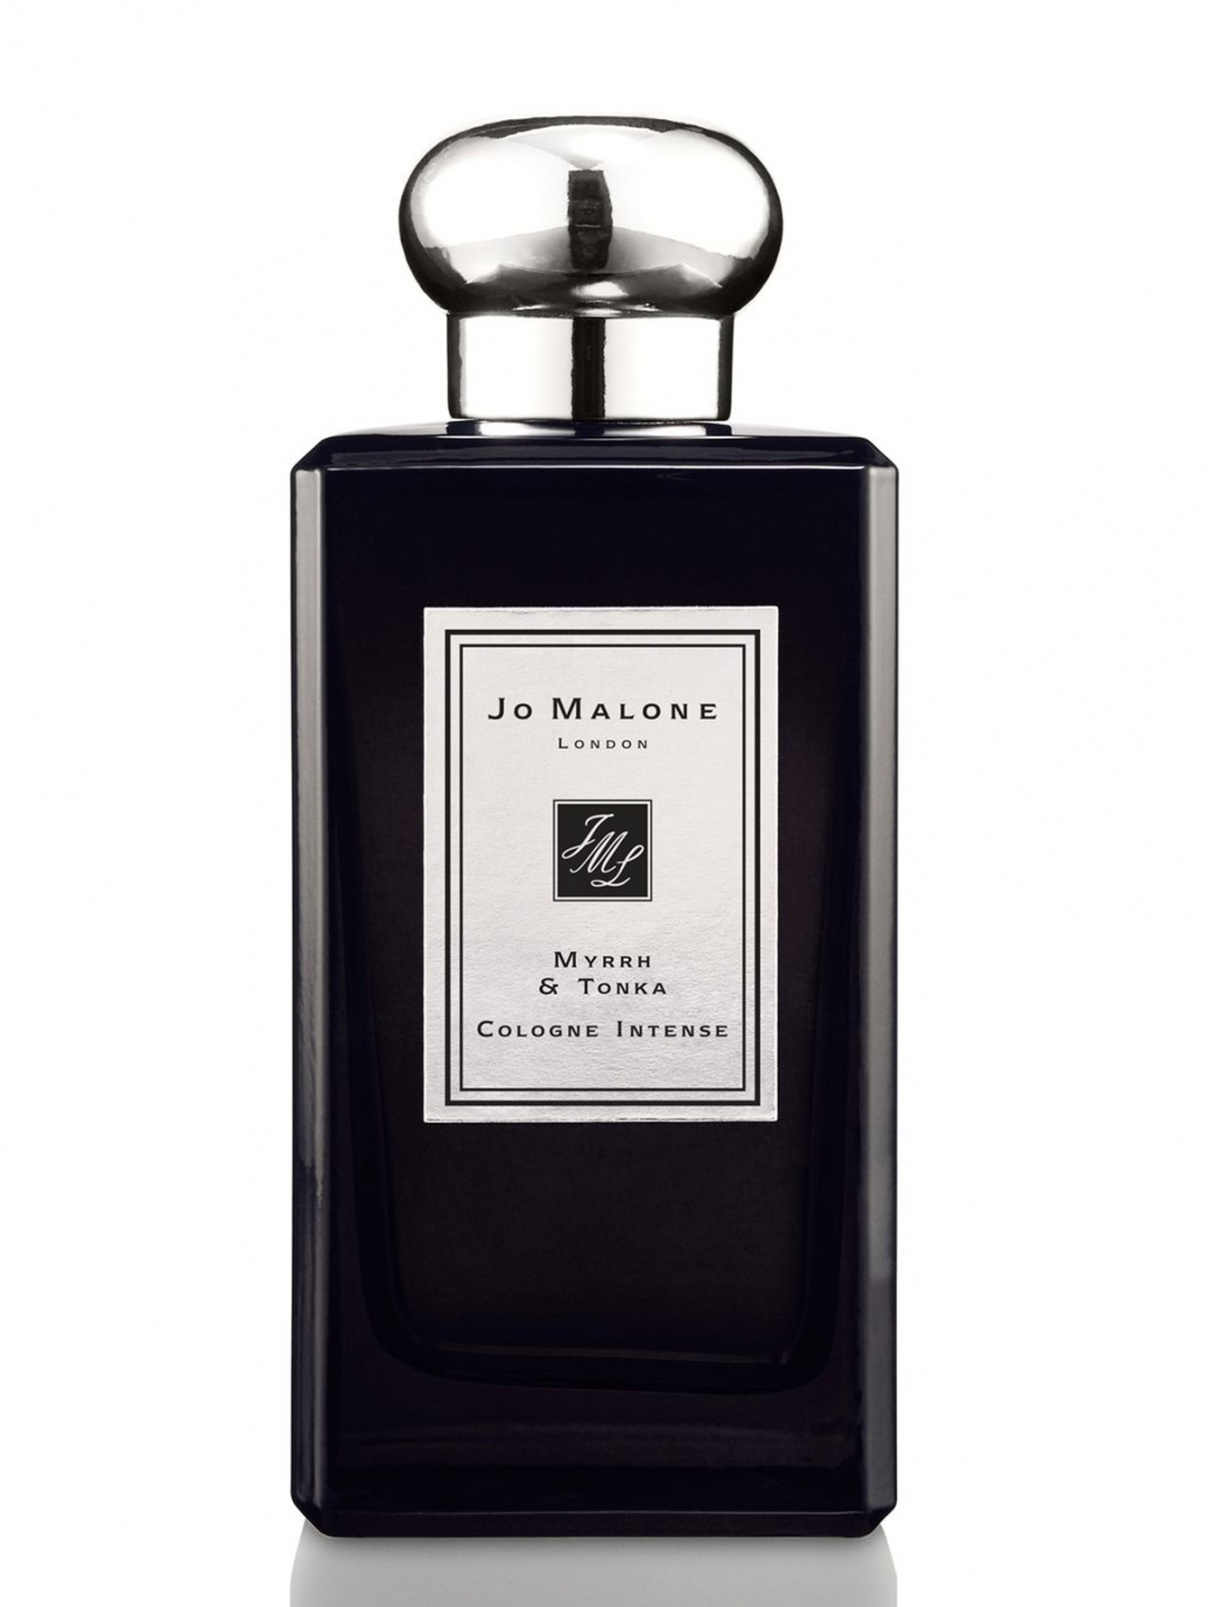 Одеколон 100 мл Intense Myrrh & Tonka Jo Malone London  –  Общий вид